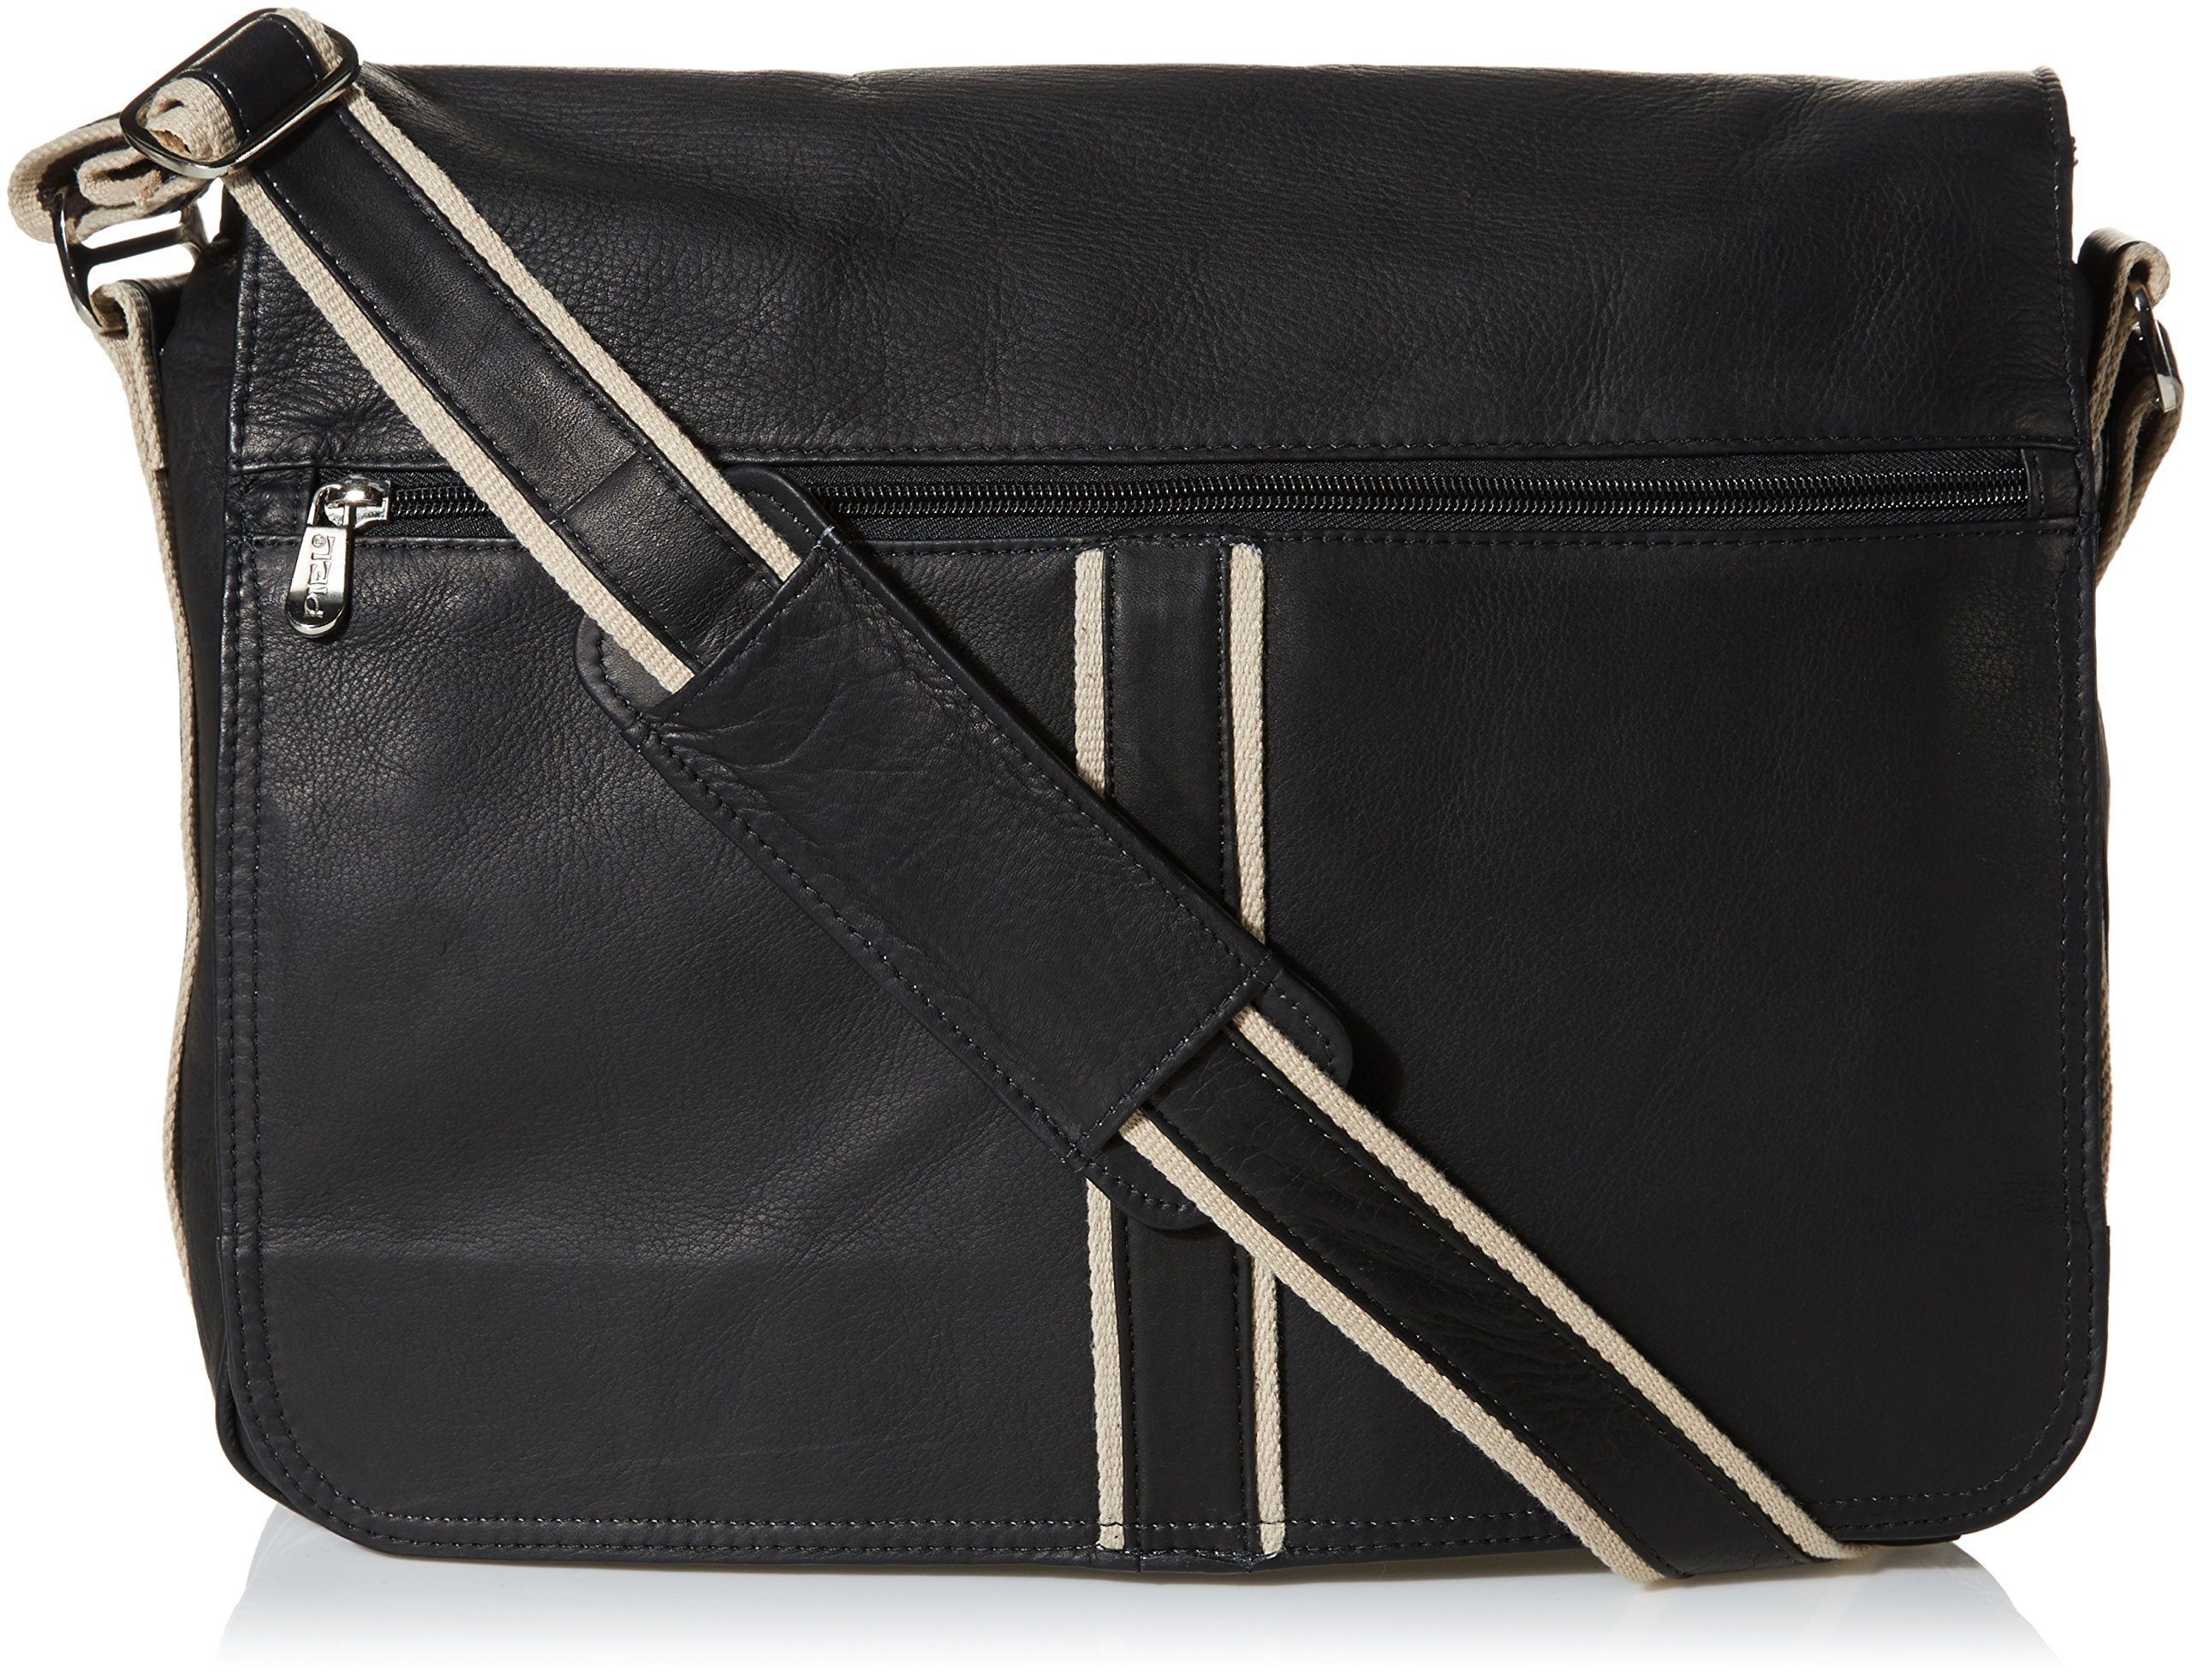 Piel Leather Four-Section Urban Messenger, Black, One Size by Piel Leather